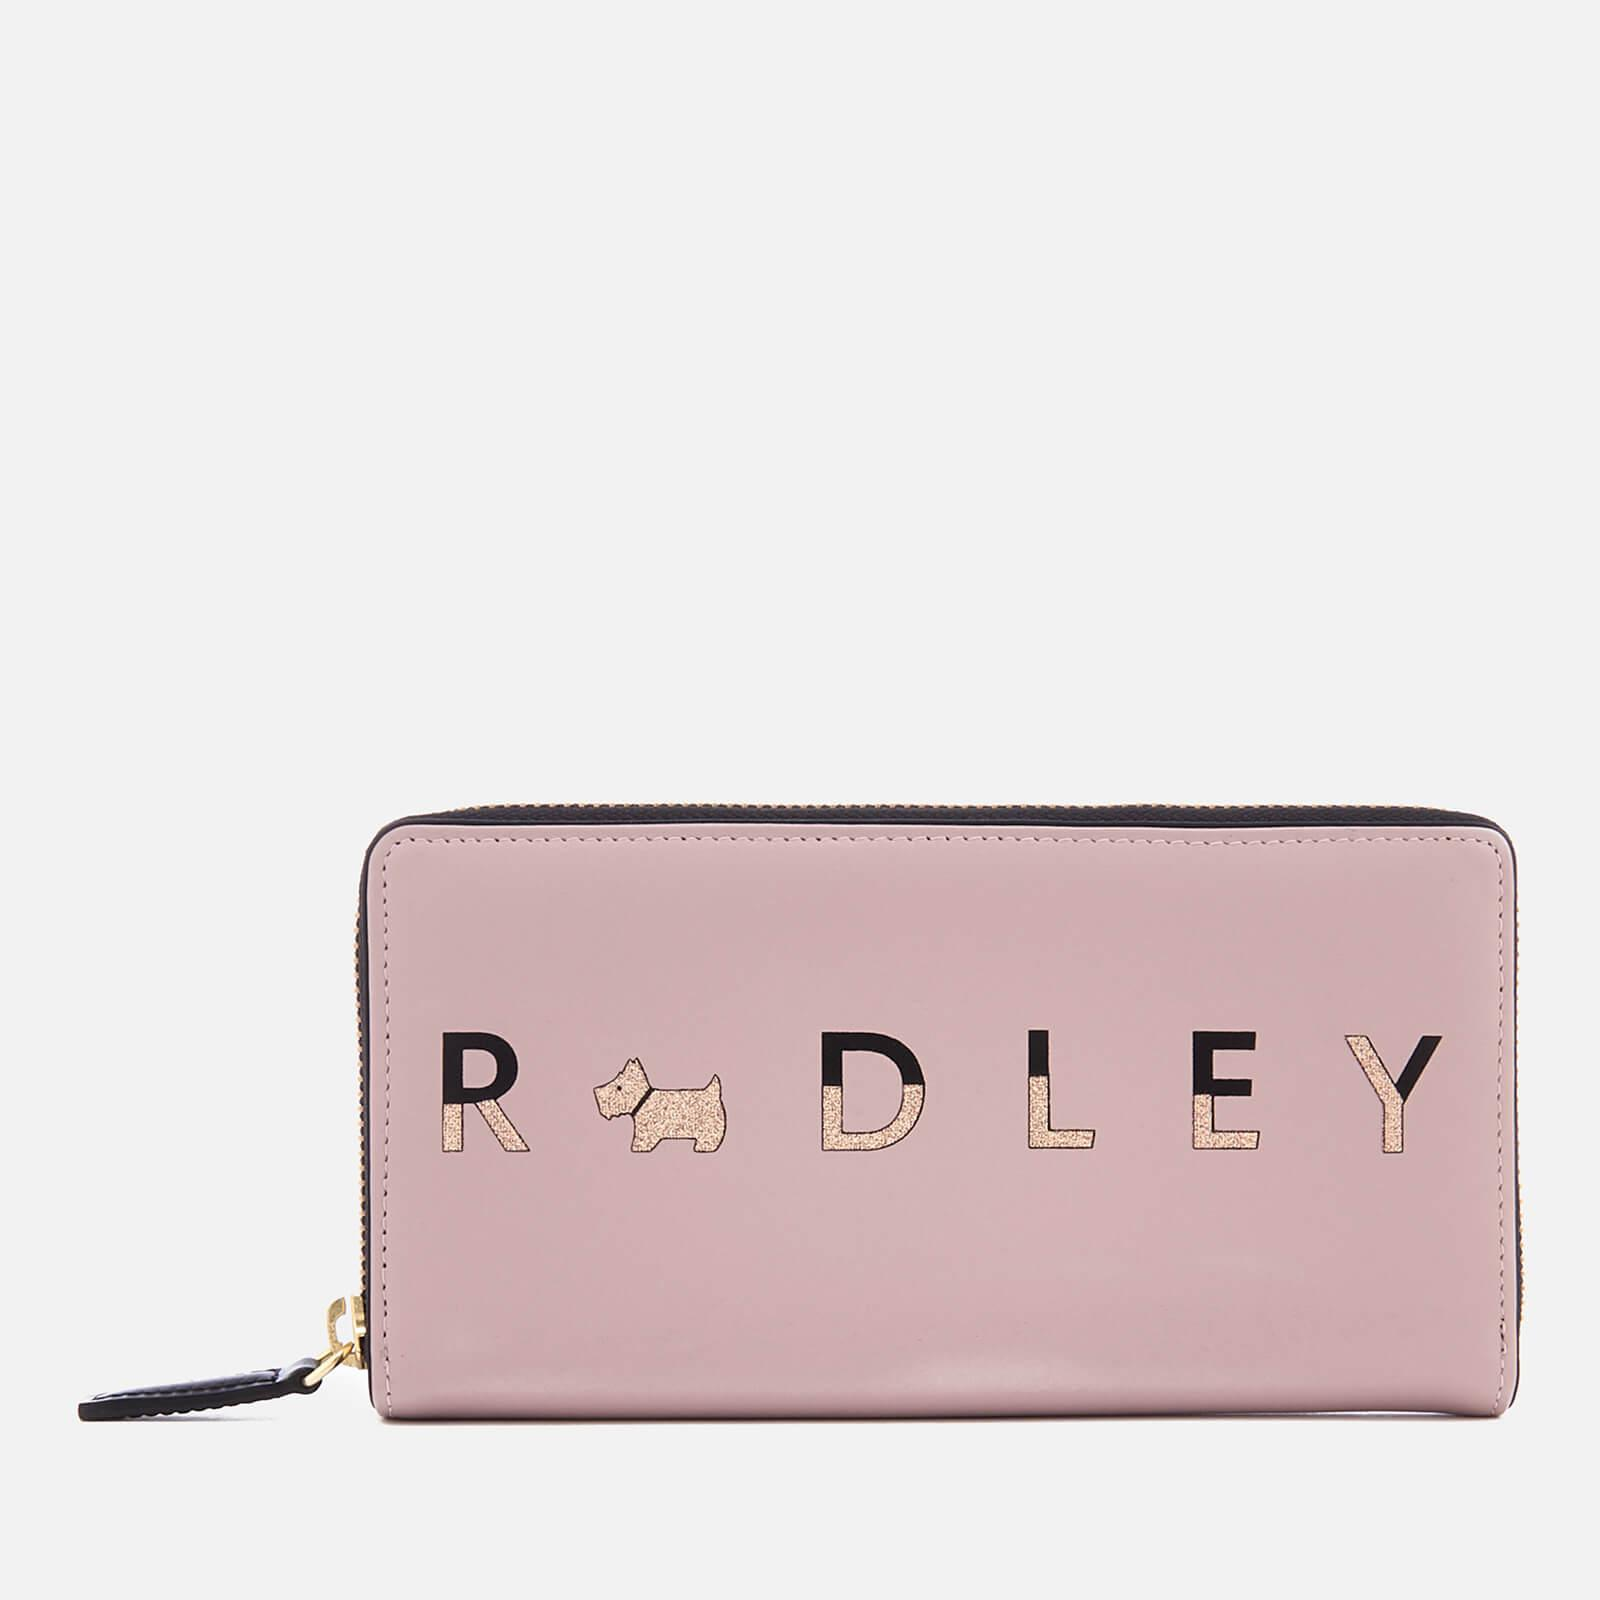 Lyst - Radley All That Glitters Large Zip Around Matinee Purse in Pink